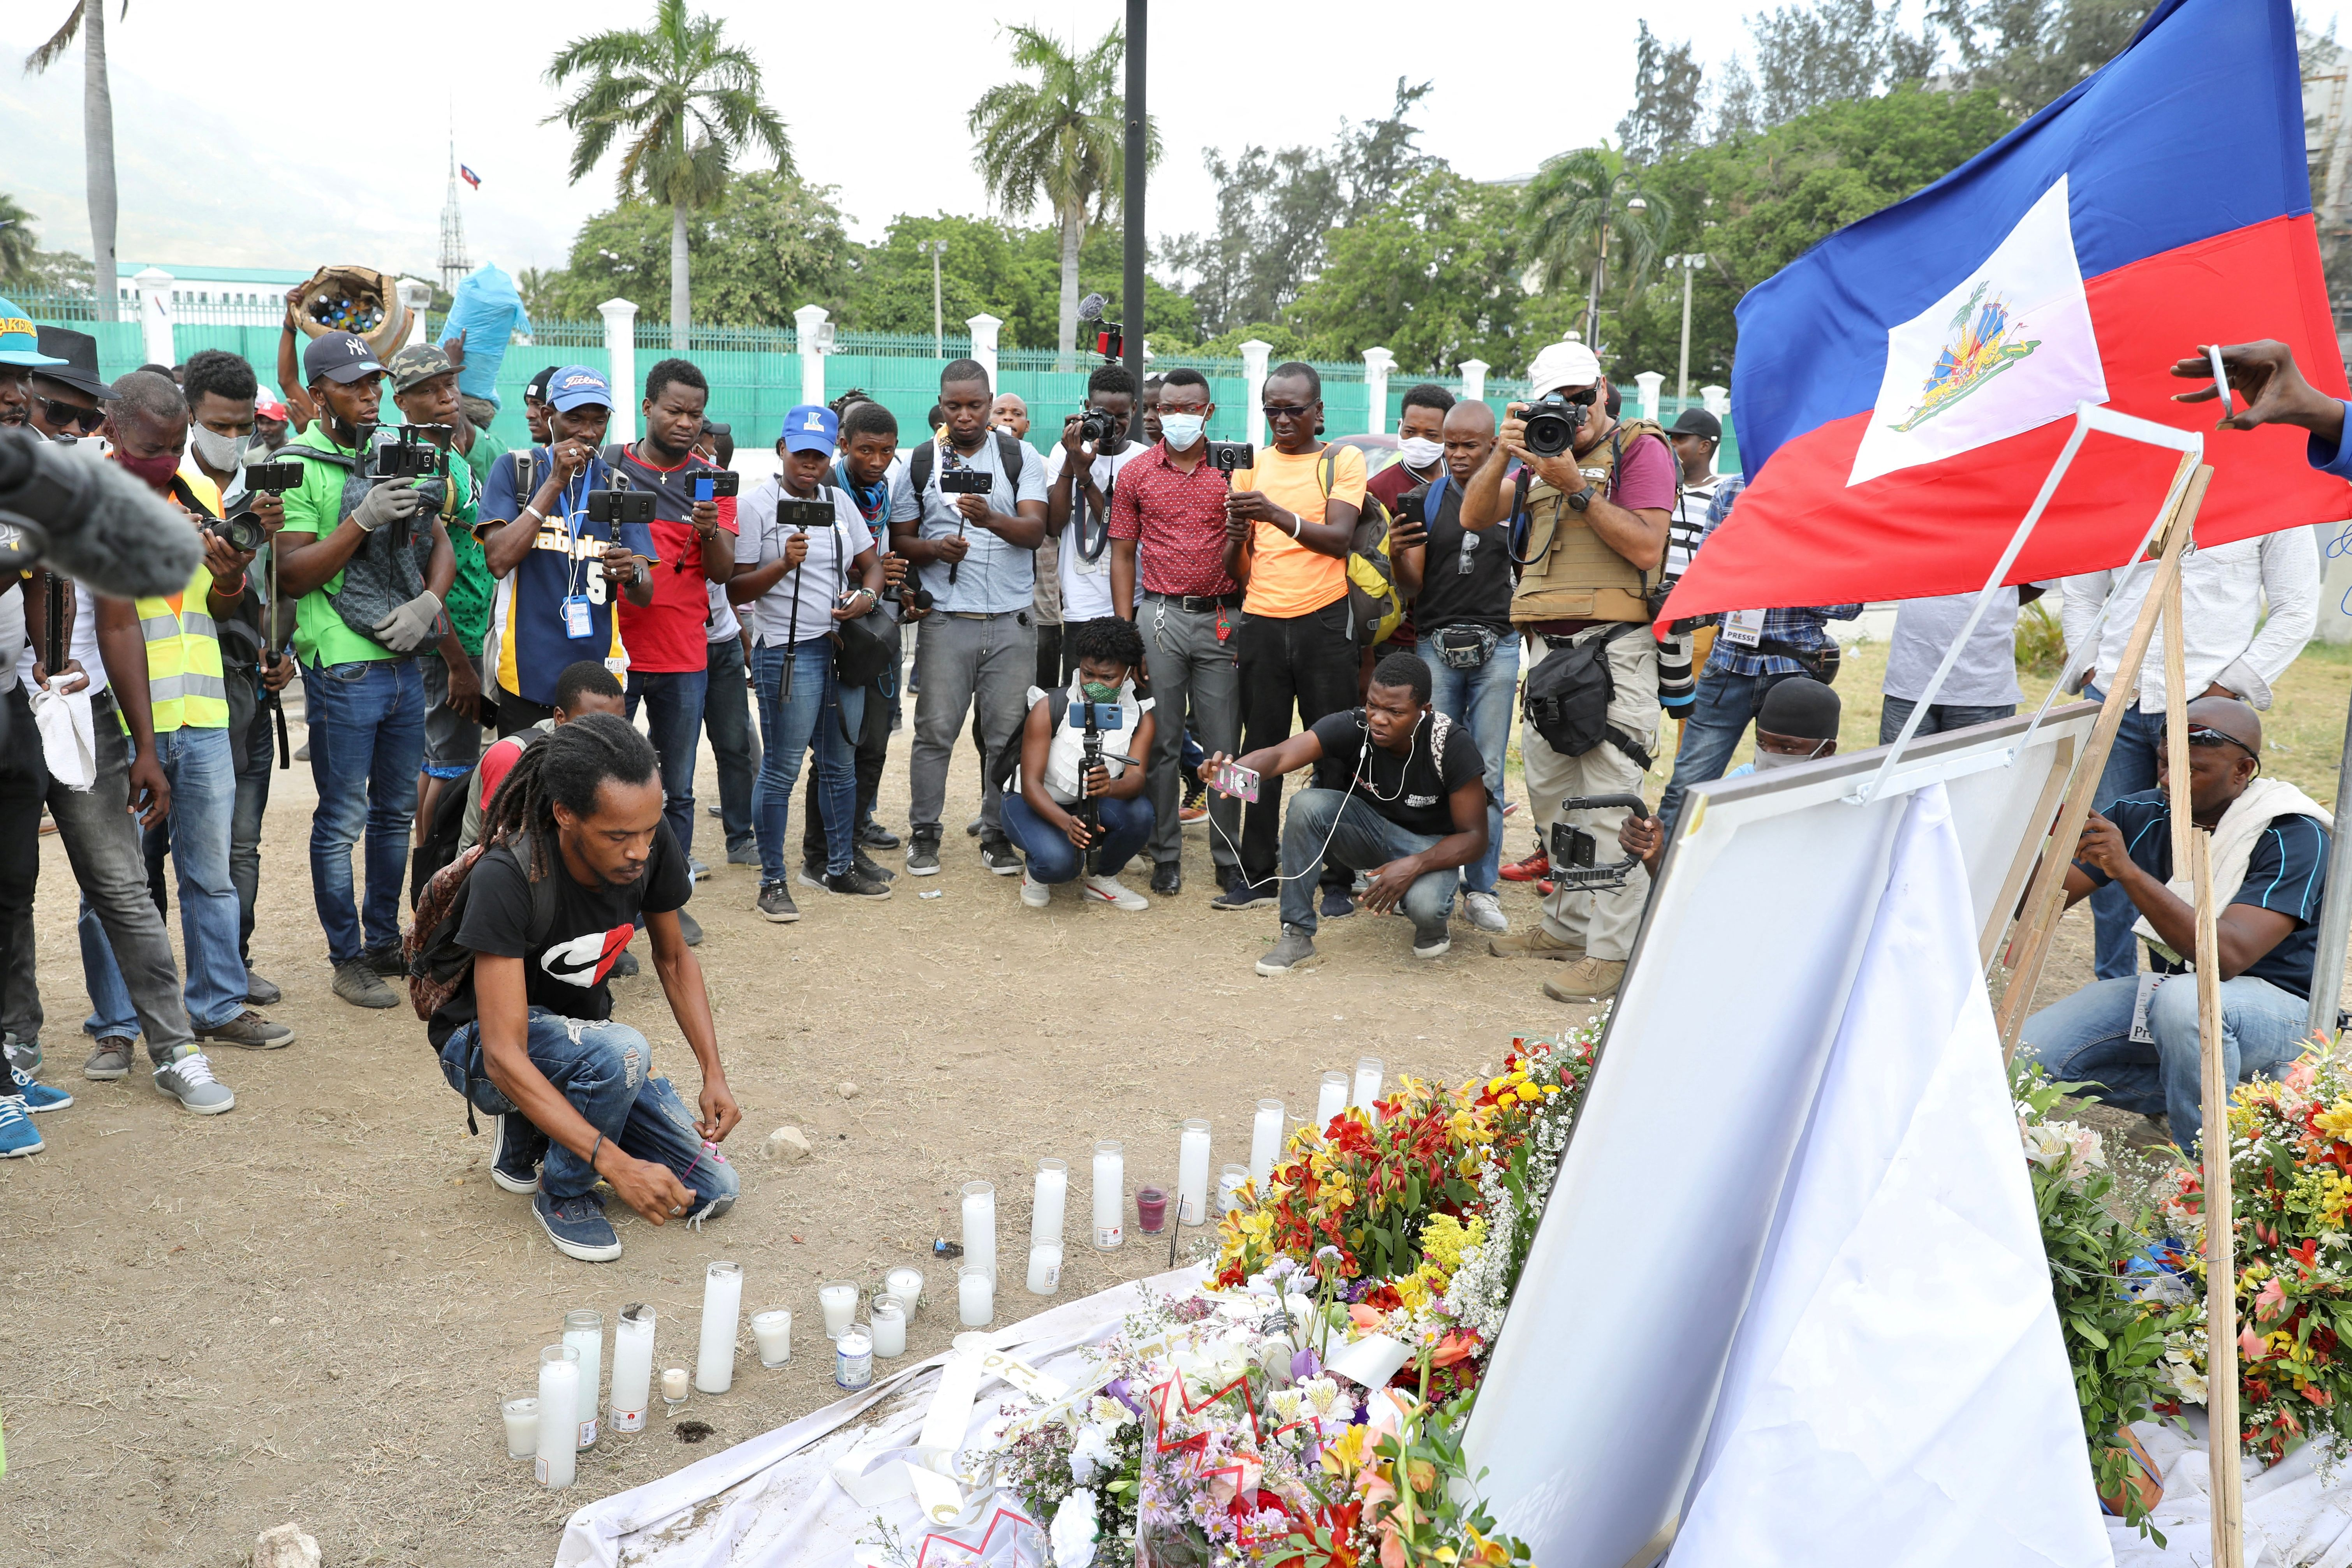 A crowd of people is gathered to pay their respects following the assassination of Haitian President Jovenel Moise on July 14, 2021. One man is kneeling in front of a vigil with candles, flowers, a photo of the late president, and a Haitian flag.